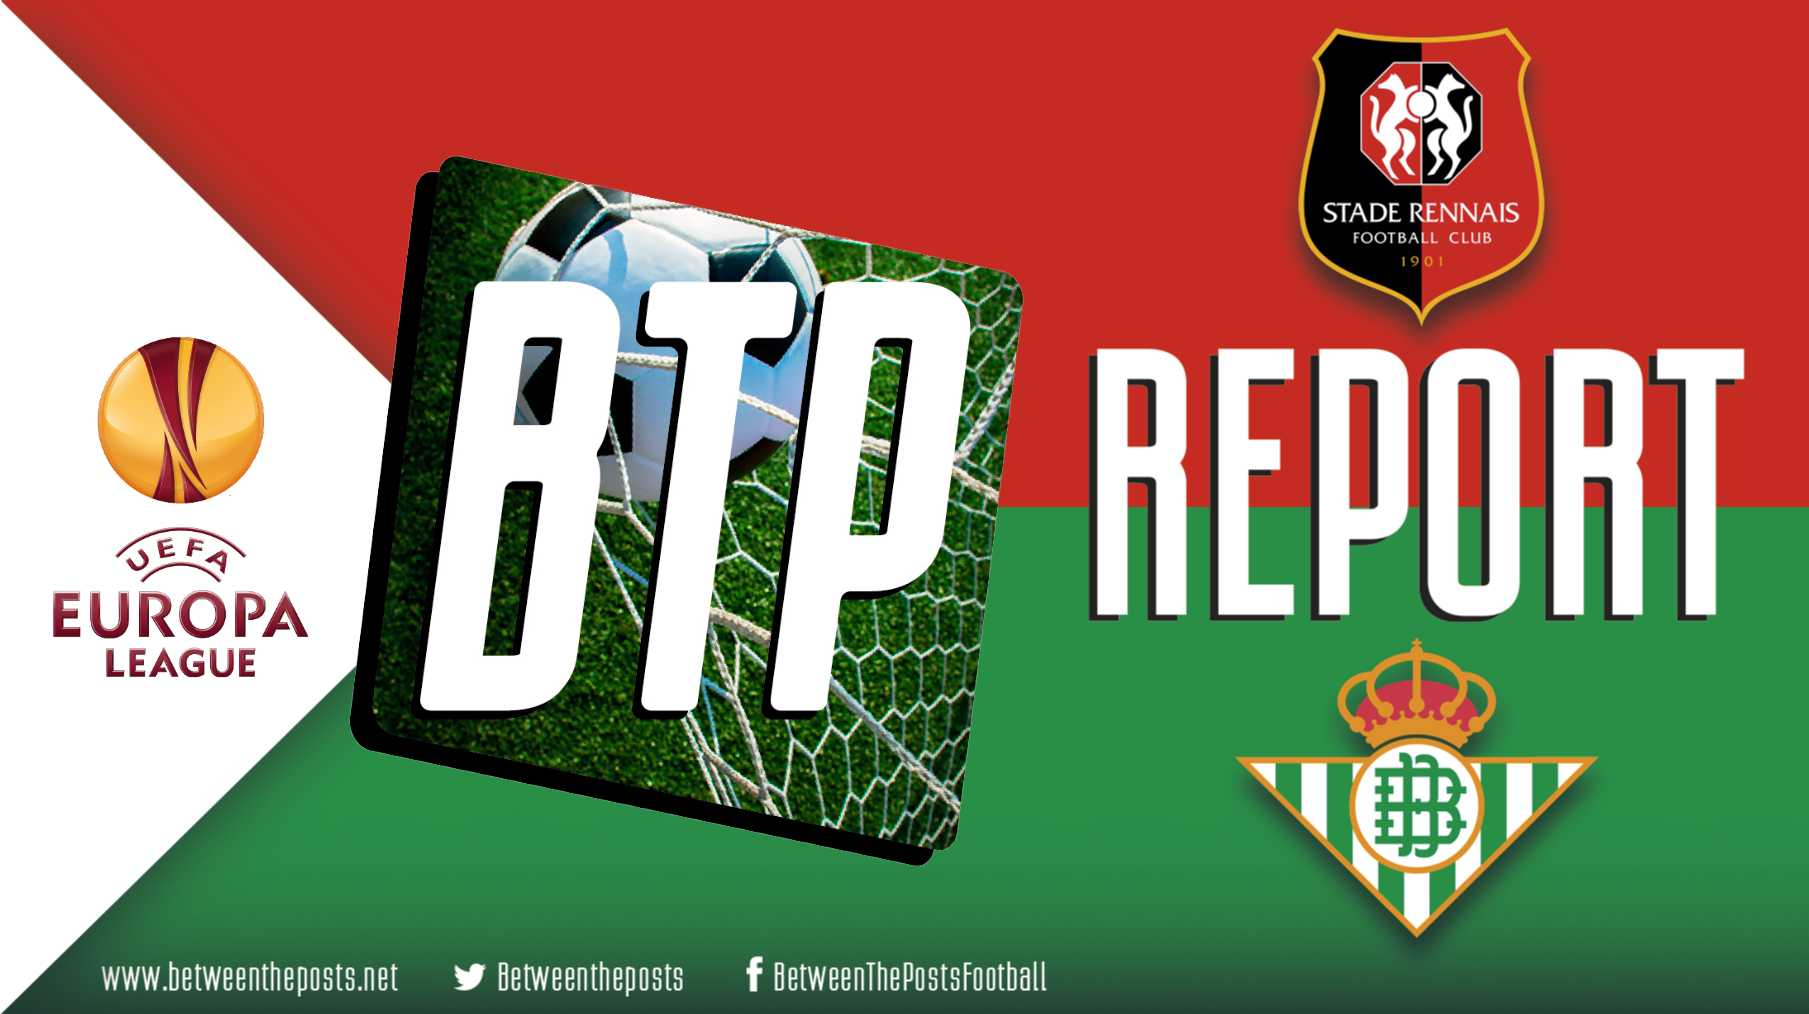 Tactical analysis Stade Rennais - Real Betis 3-3 Europa League